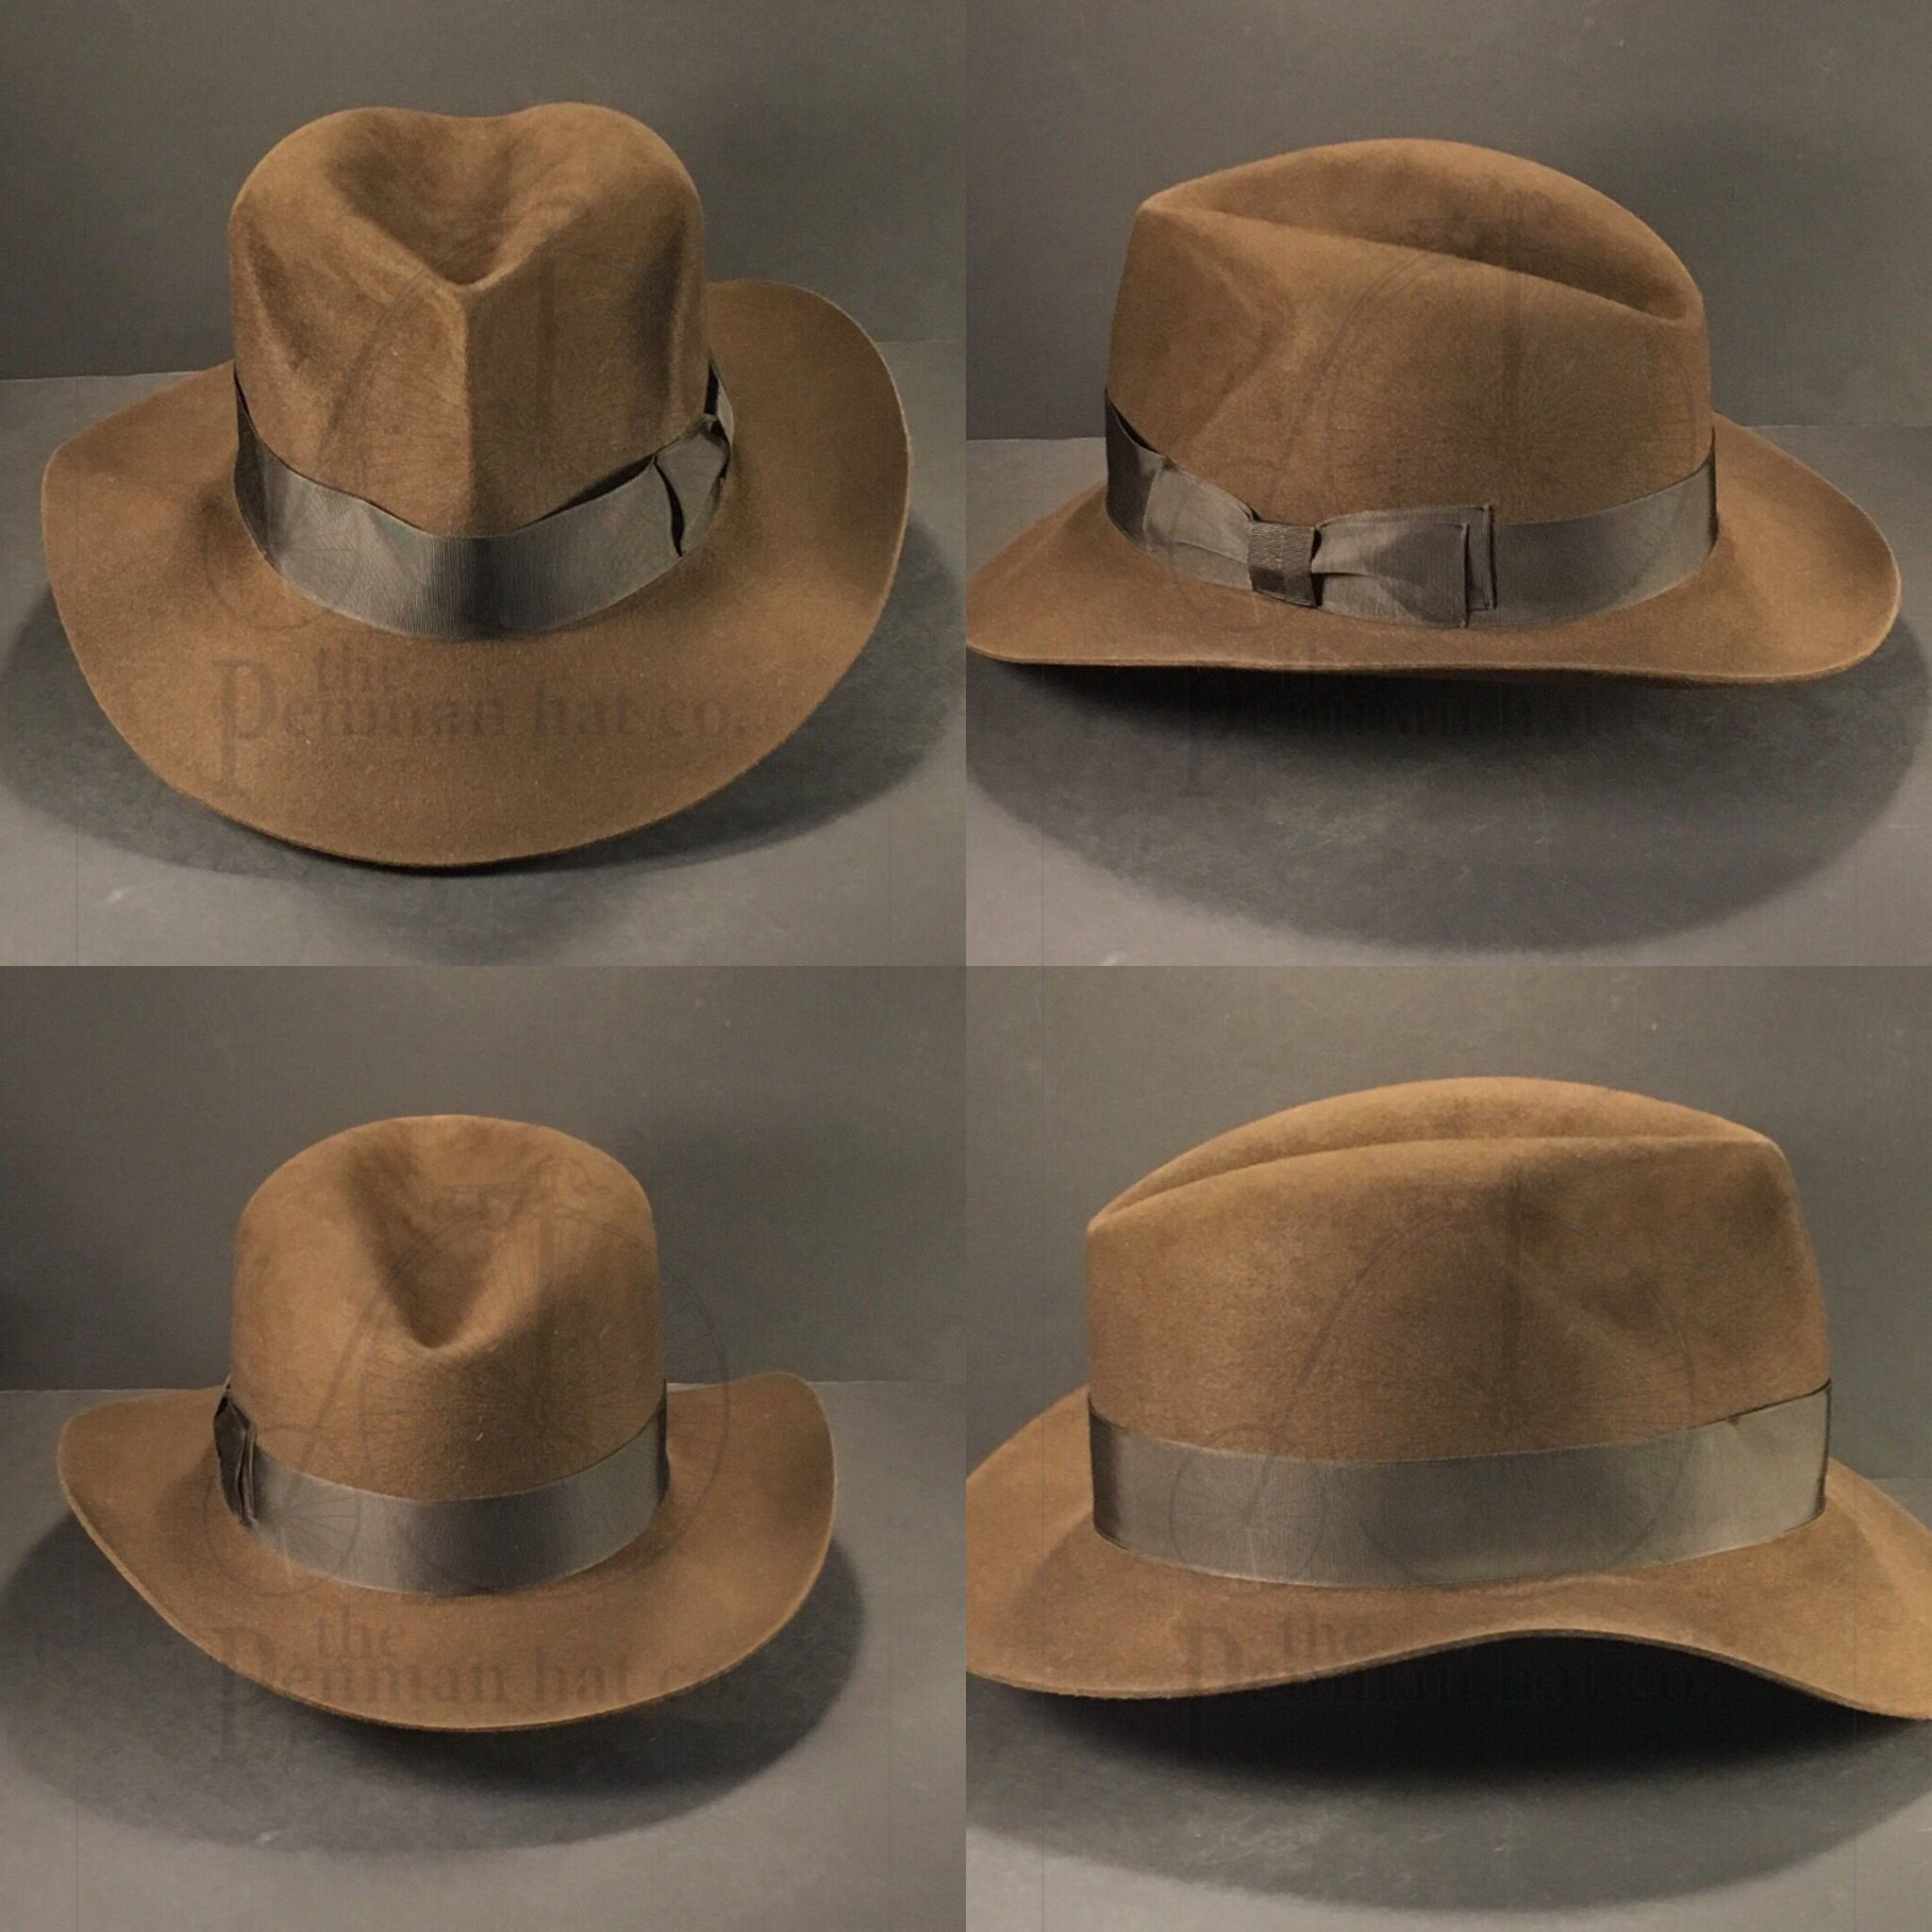 8d51f6b61e5192 Just finished this Indiana Jones Raiders of the Lost Ark fedora.  #OnlyPenman #penmanhats